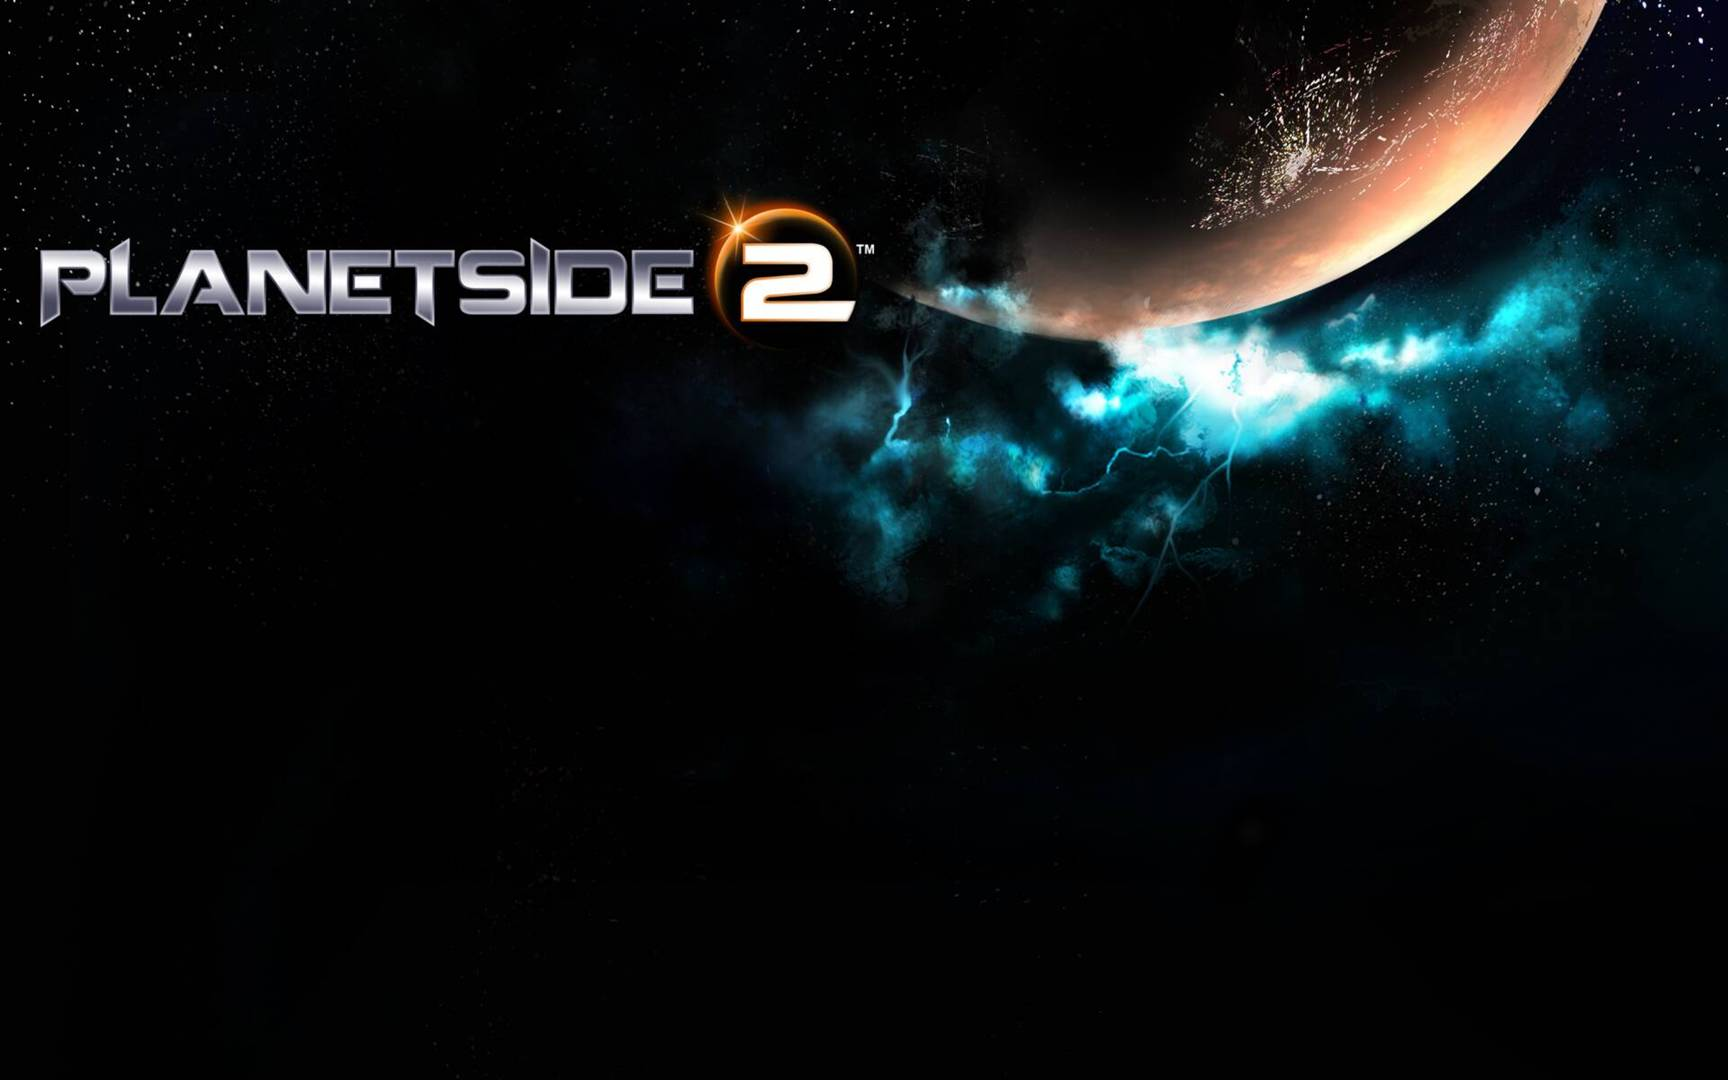 Planetside 2 Wallpapers In 1080P HD &171 GamingBoltcom Video Game News